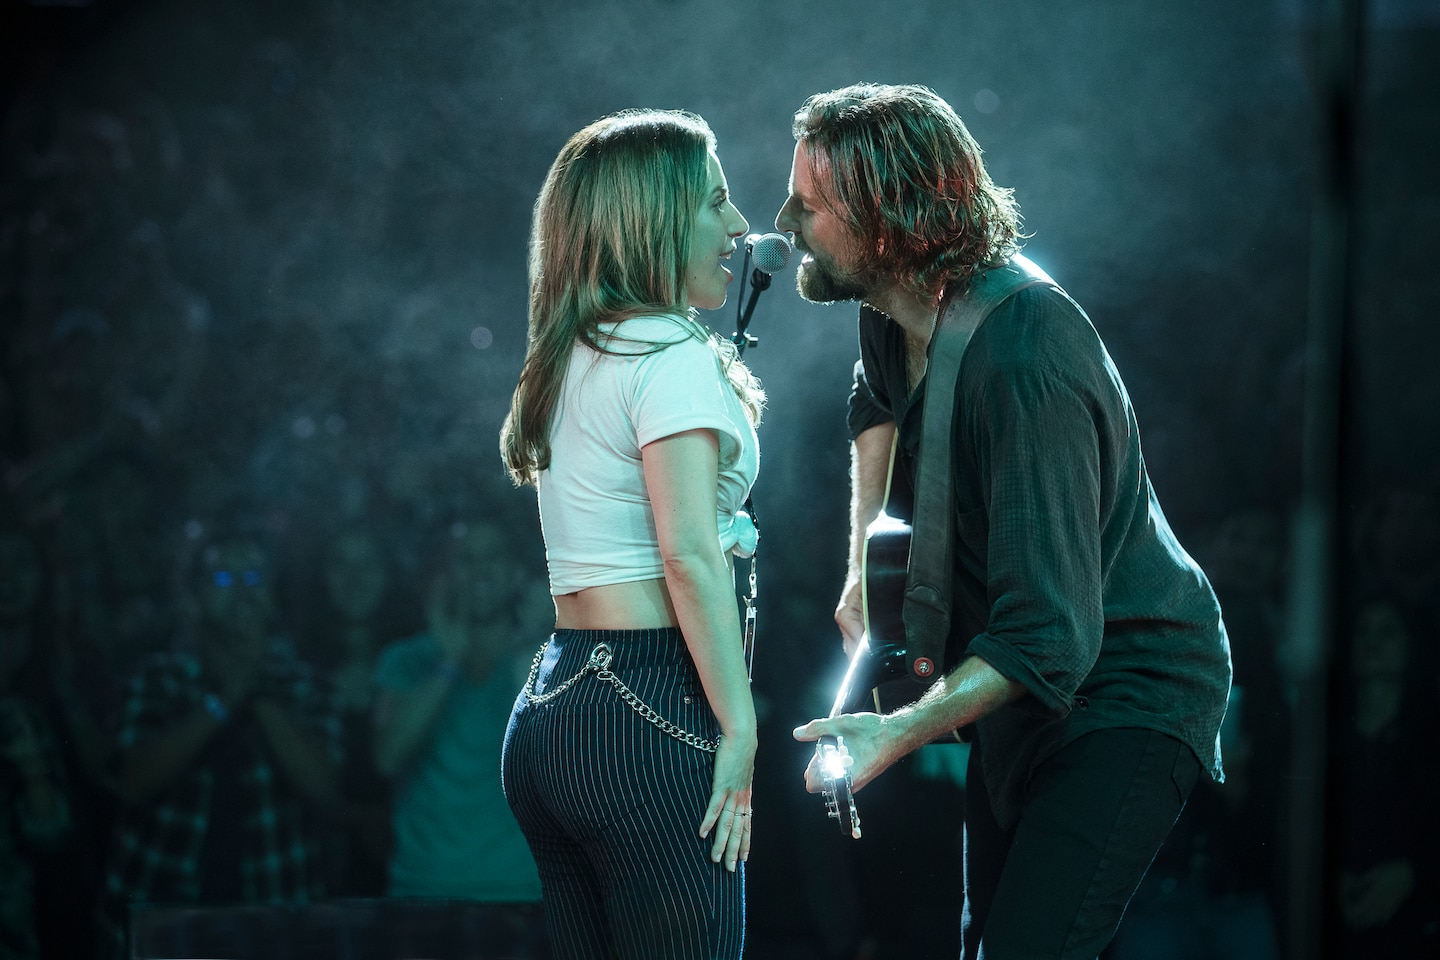 Golden Globes: Yes, 'A Star Is Born' is competing as a drama and not a musical. Here's why.